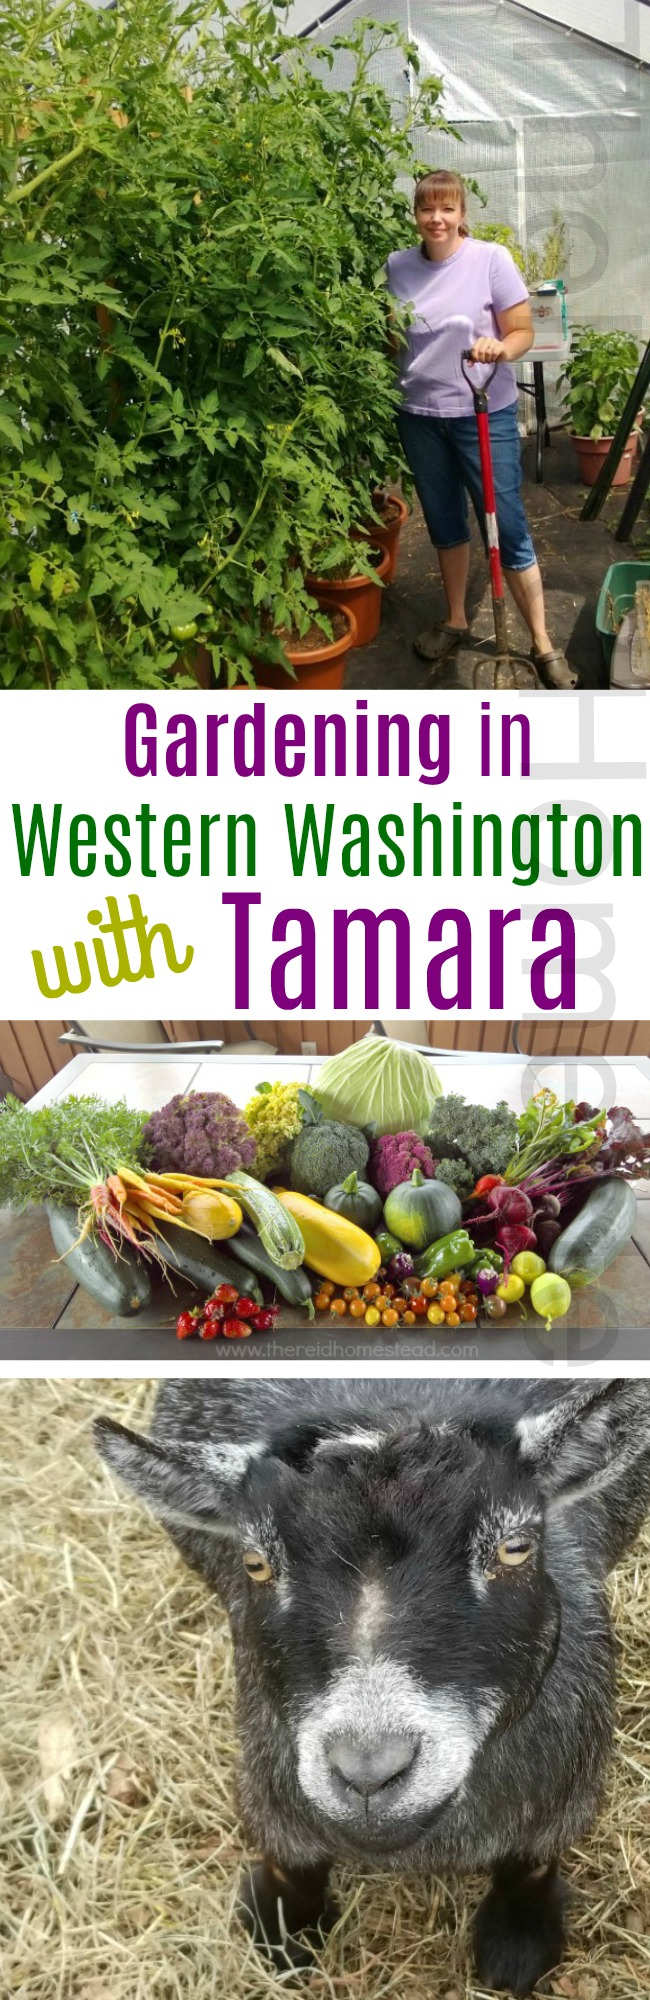 Mavis Mail – Tamara From Monroe, Washington Sends in Her Garden, Goat and Chicken Photos